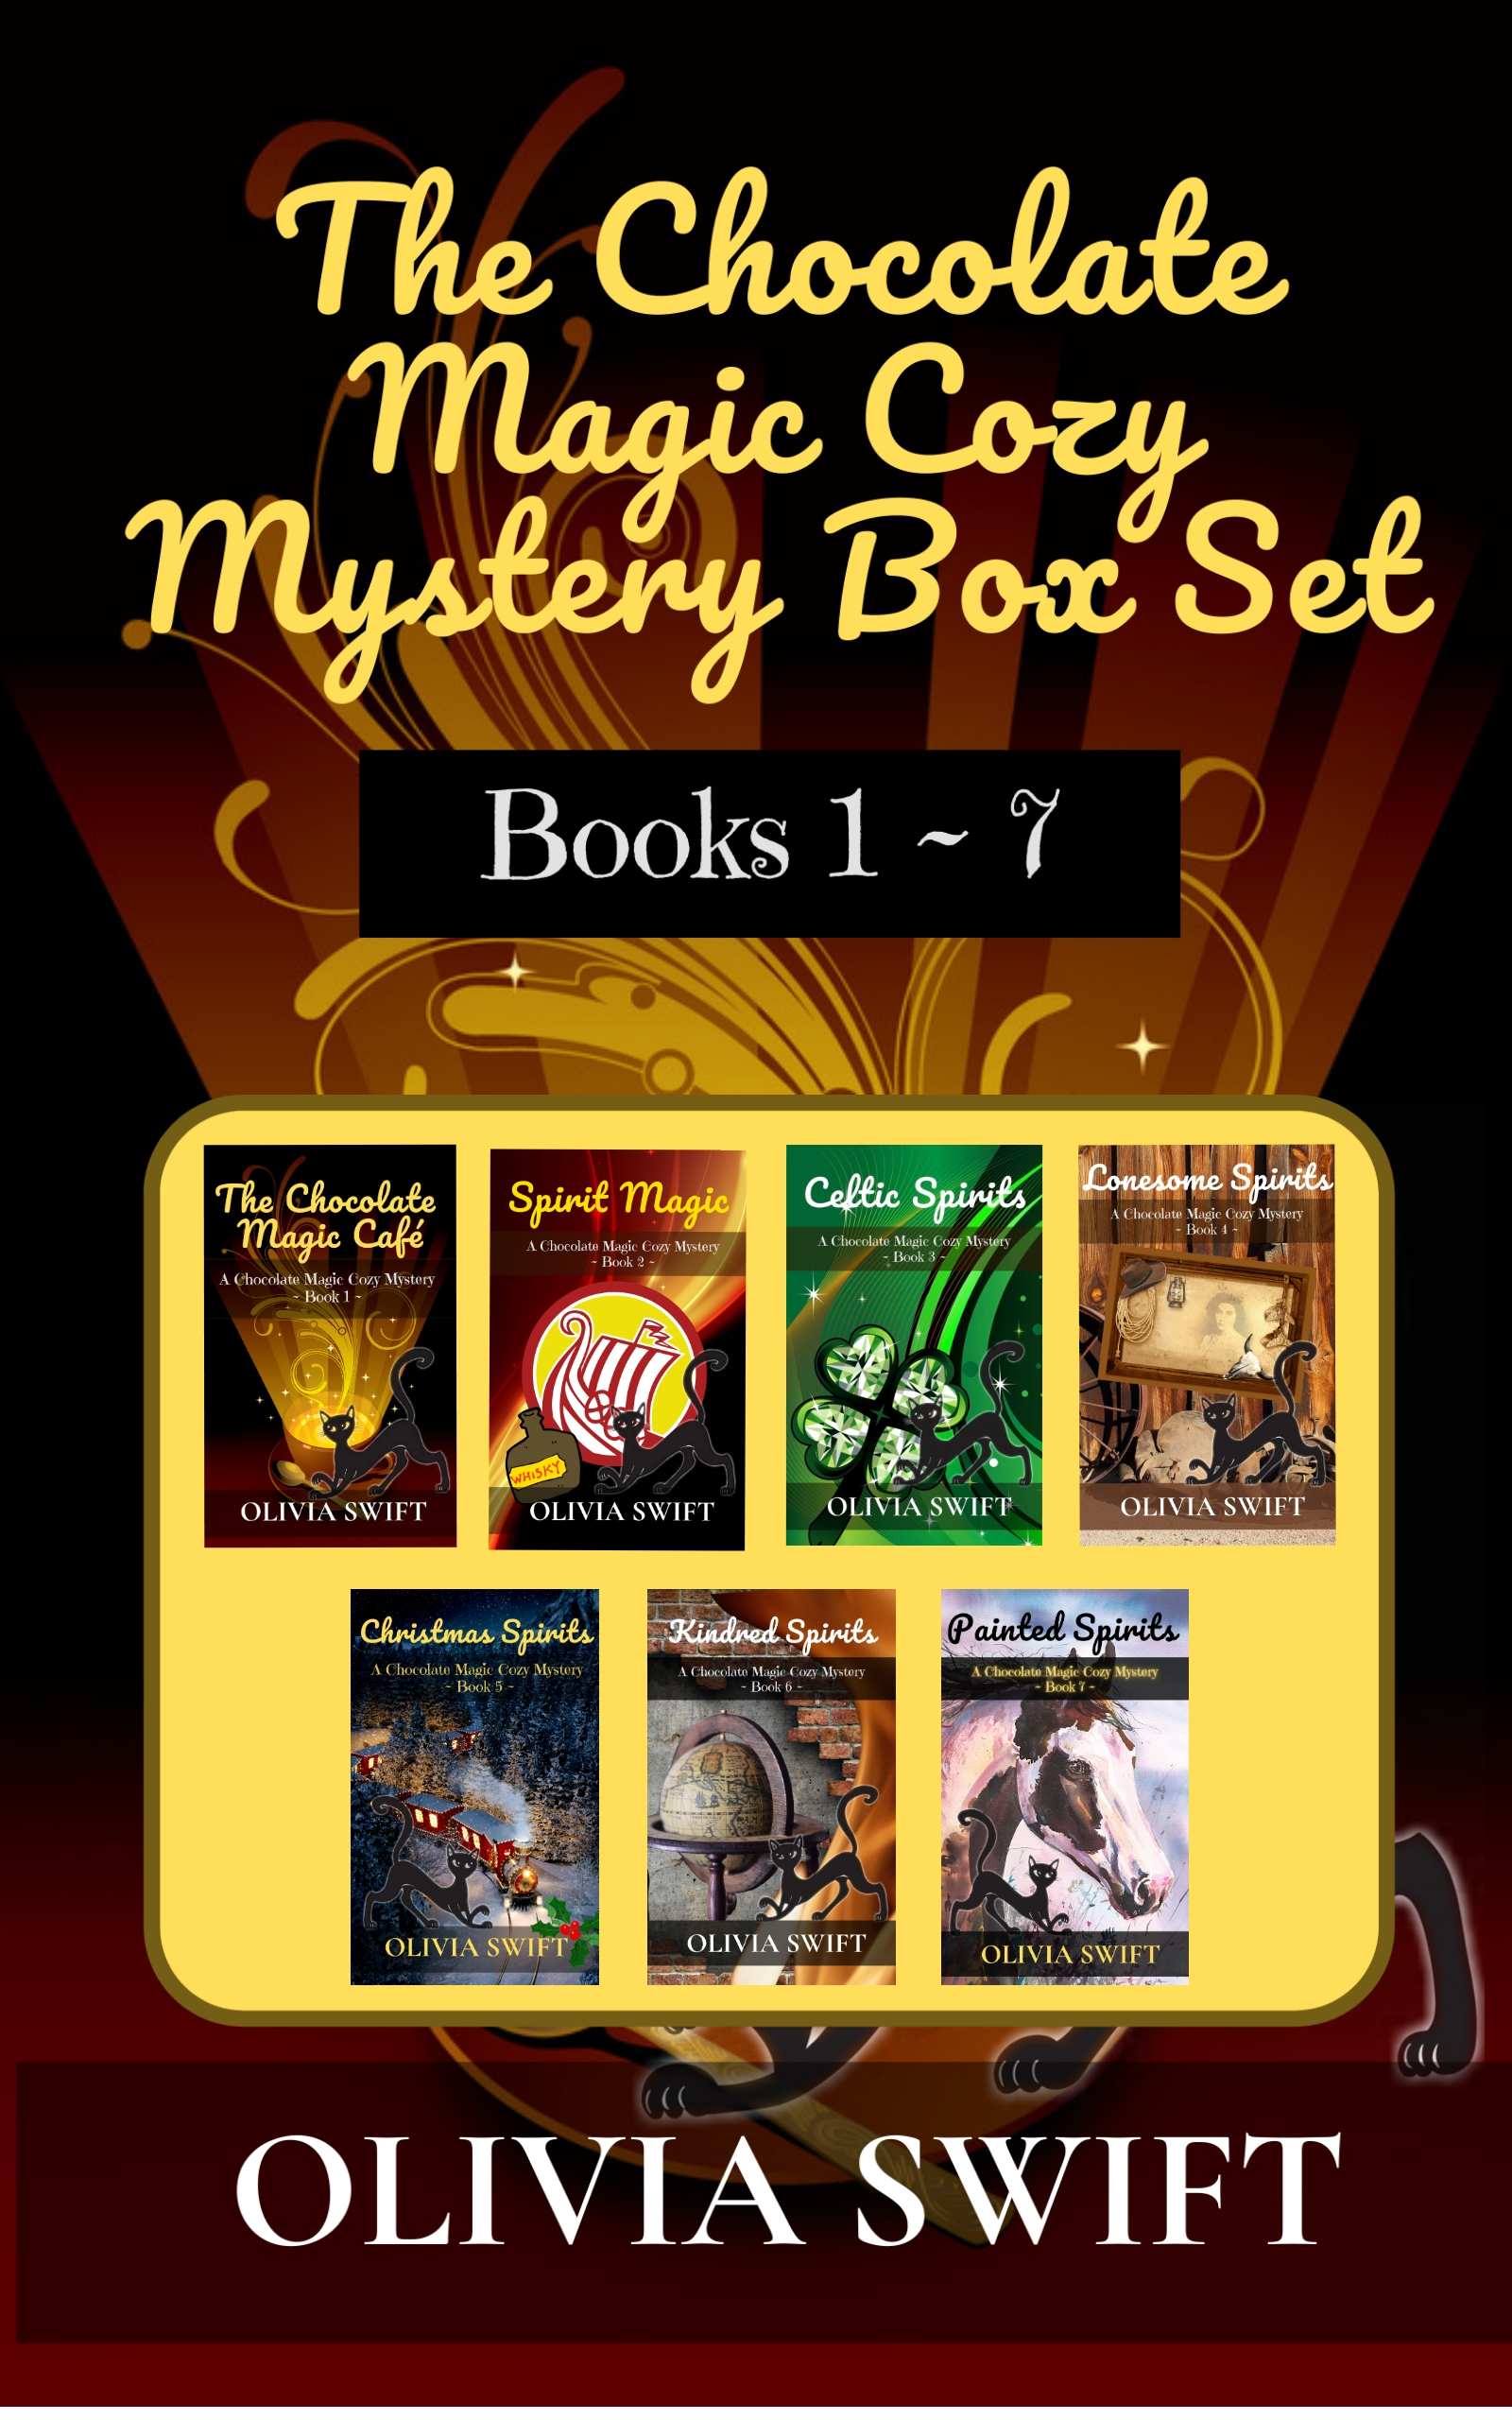 The Chocolate Magic Cozy Mystery Box Set Books 1 to 7